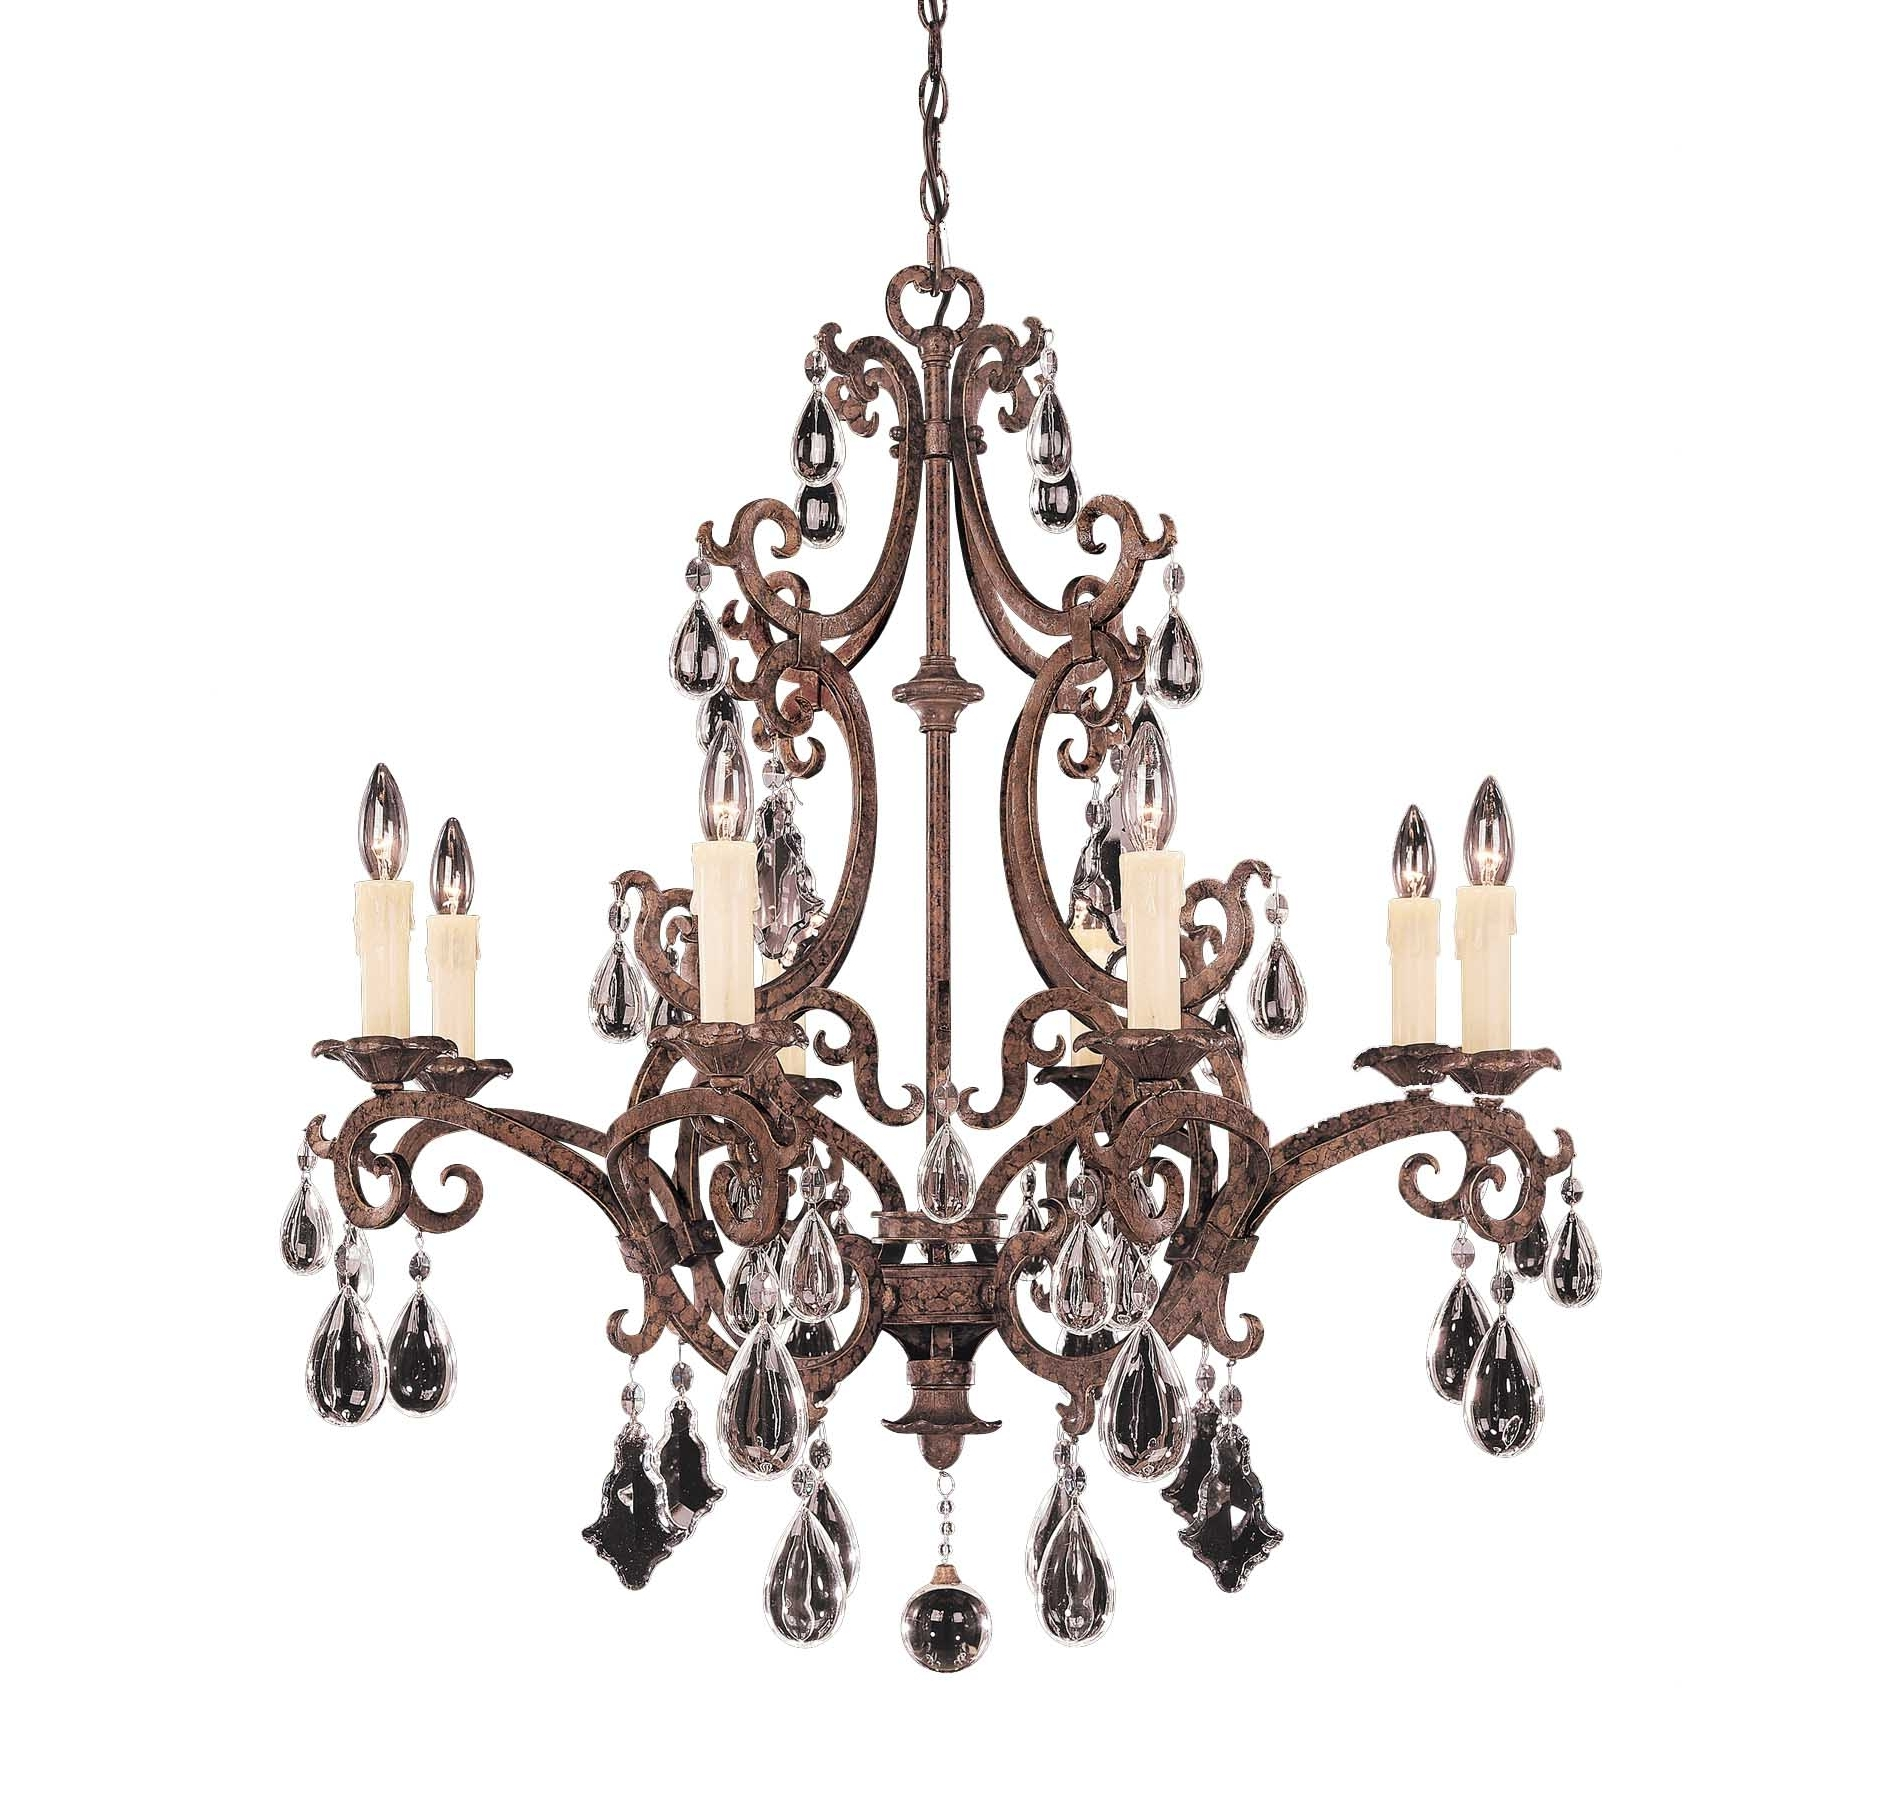 2017 Traditional Chandeliers With Regard To The Fine Fabric Of Space And Taste Of Crystal Chandeliers – Blog (View 11 of 15)